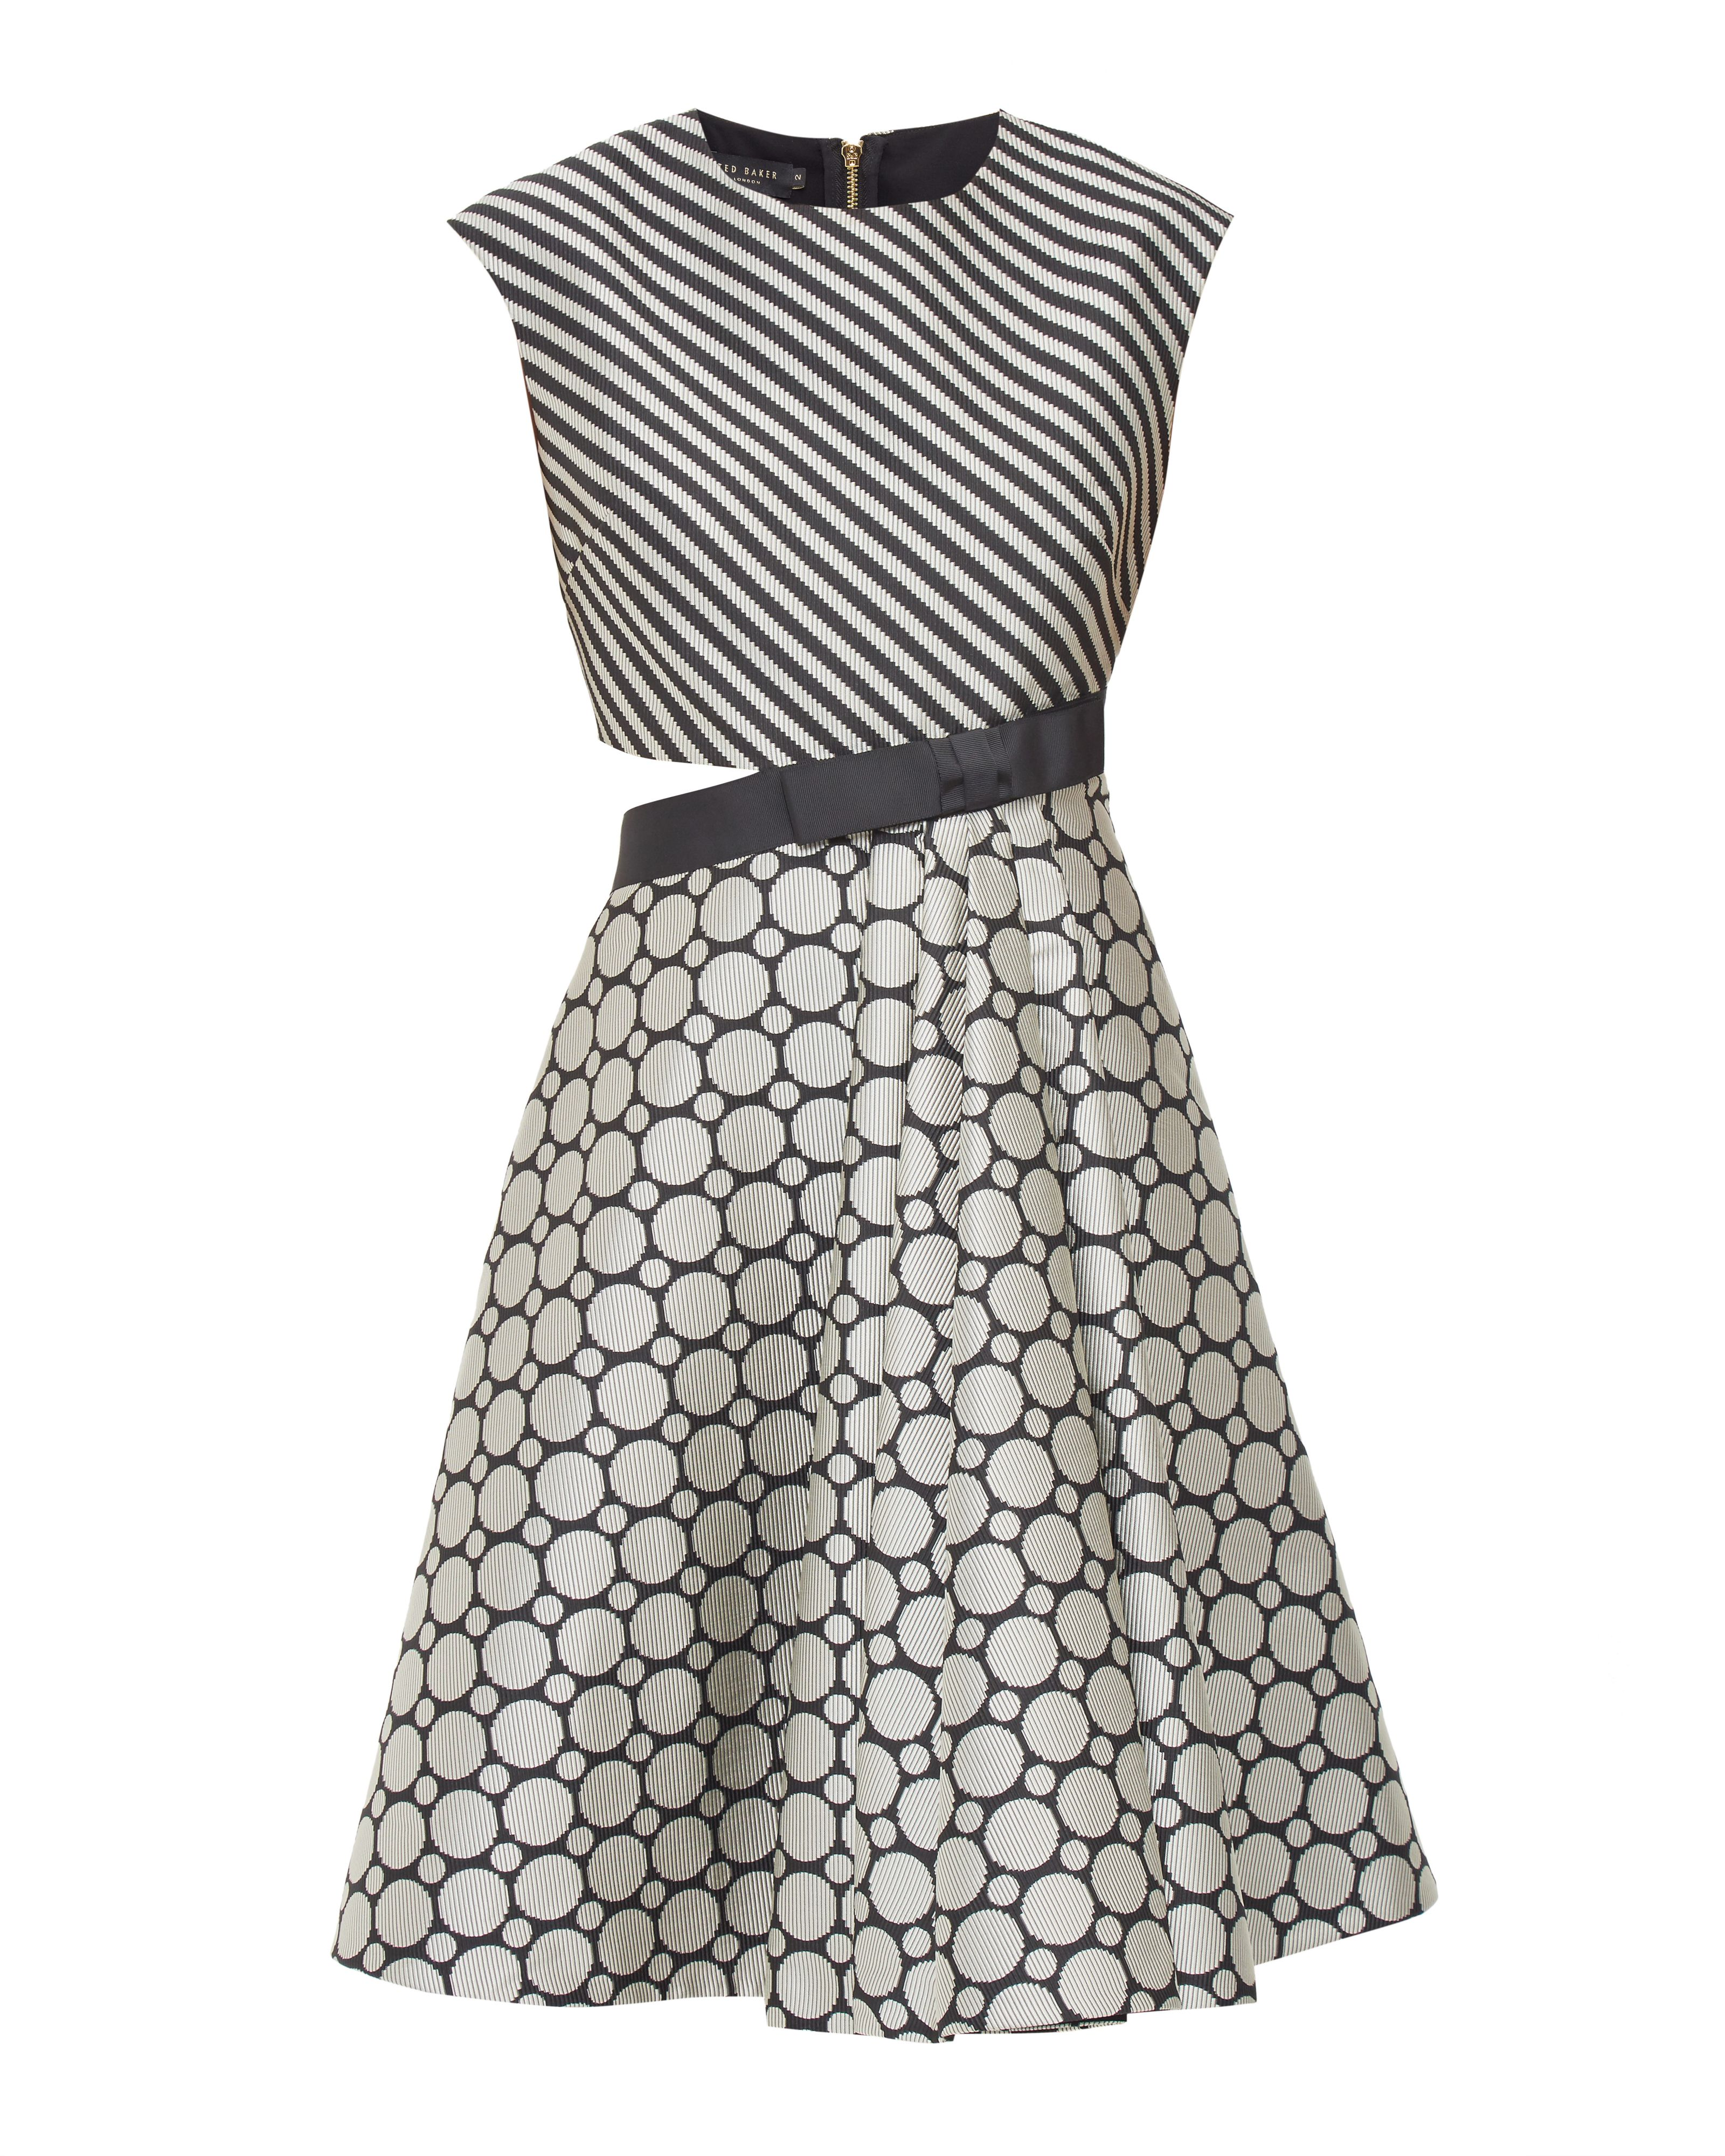 Black dress house of fraser - Ted Baker Reetah Stripe And Circle Cut Out Dress